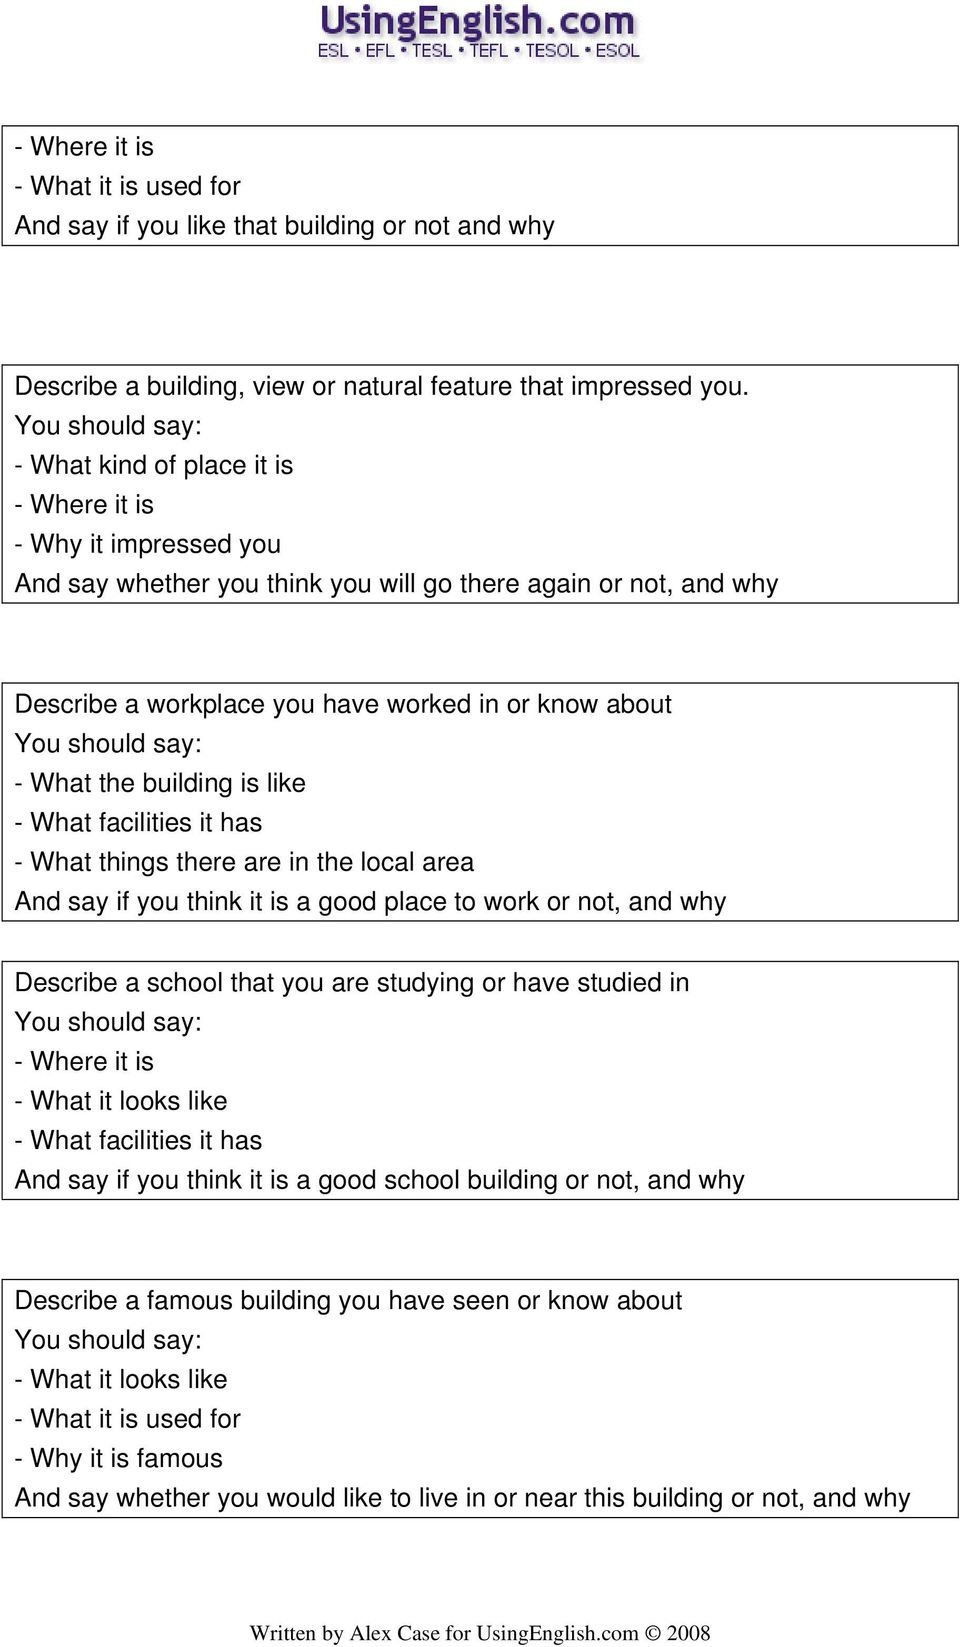 building is like - What facilities it has - What things there are in the local area And say if you think it is a good place to work or not, and why Describe a school that you are studying or have